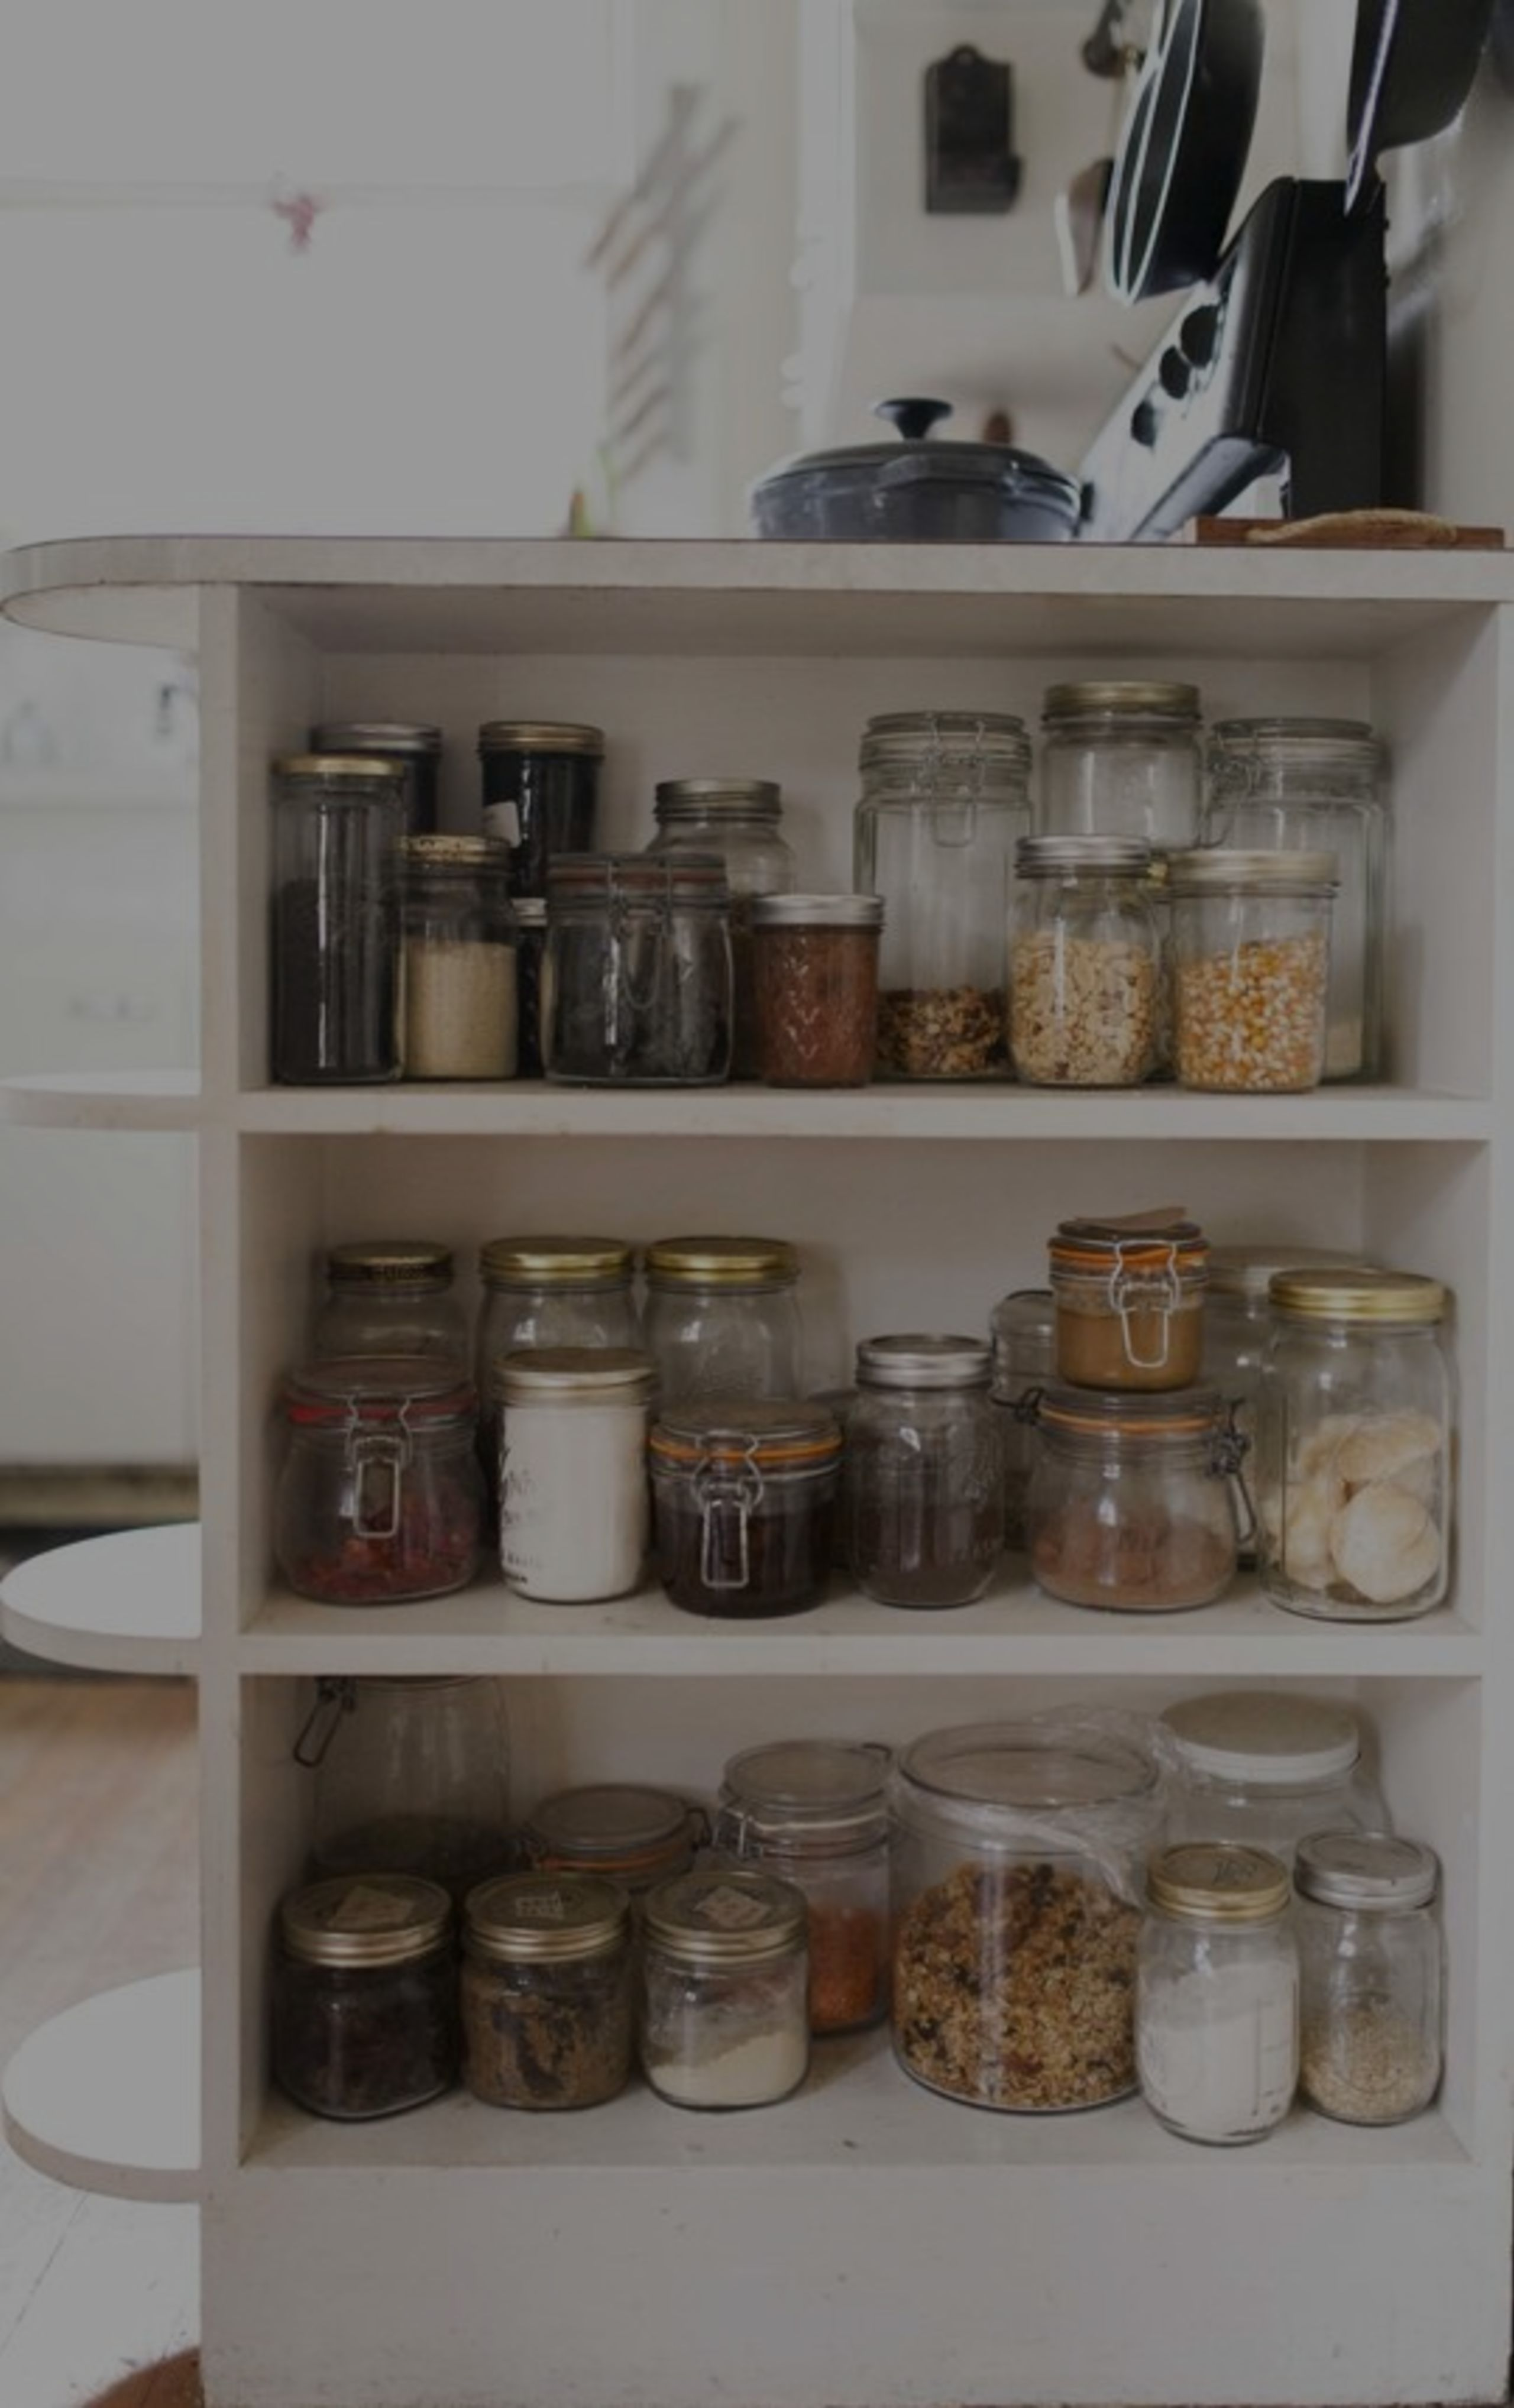 5 Things to Purge from Your Pantry This Spring